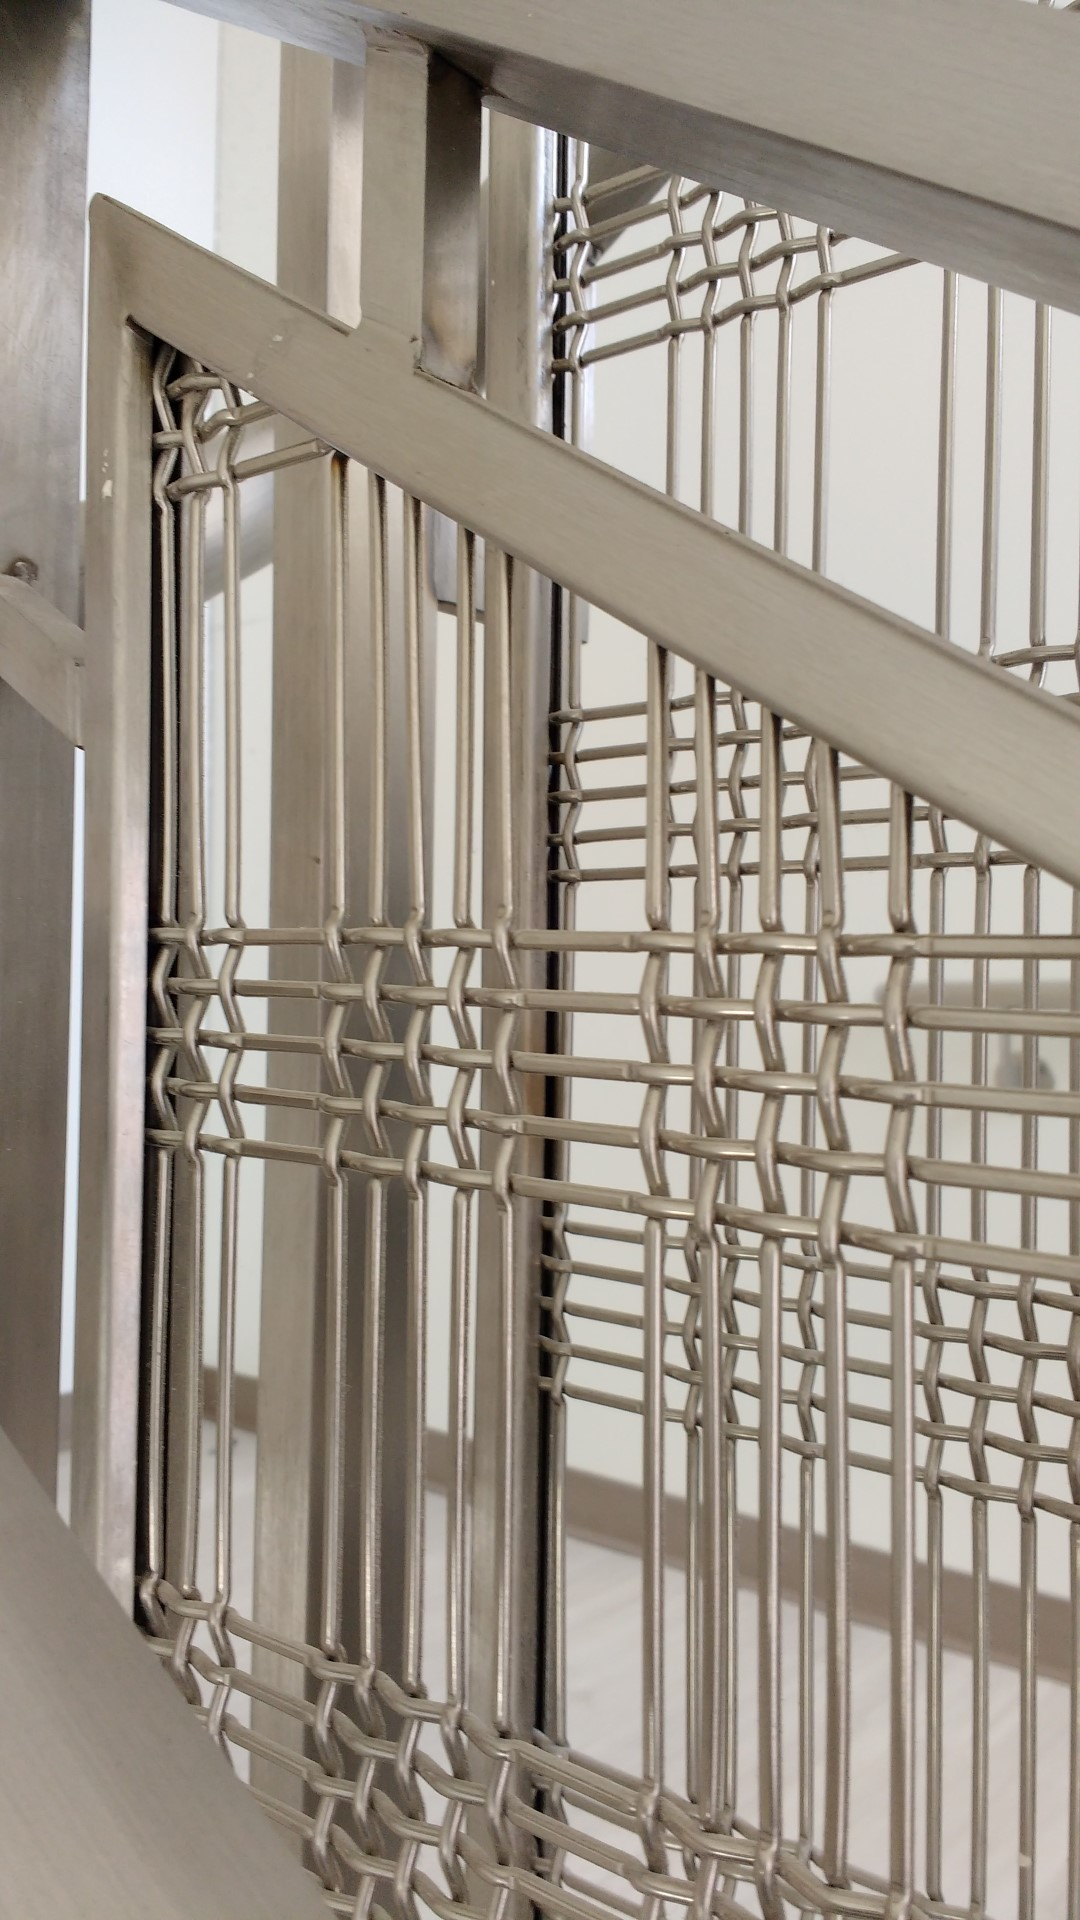 The M55Z-2 woven wire mesh is a beautiful rectangular 5 wire repeat pattern with a high percent open area.